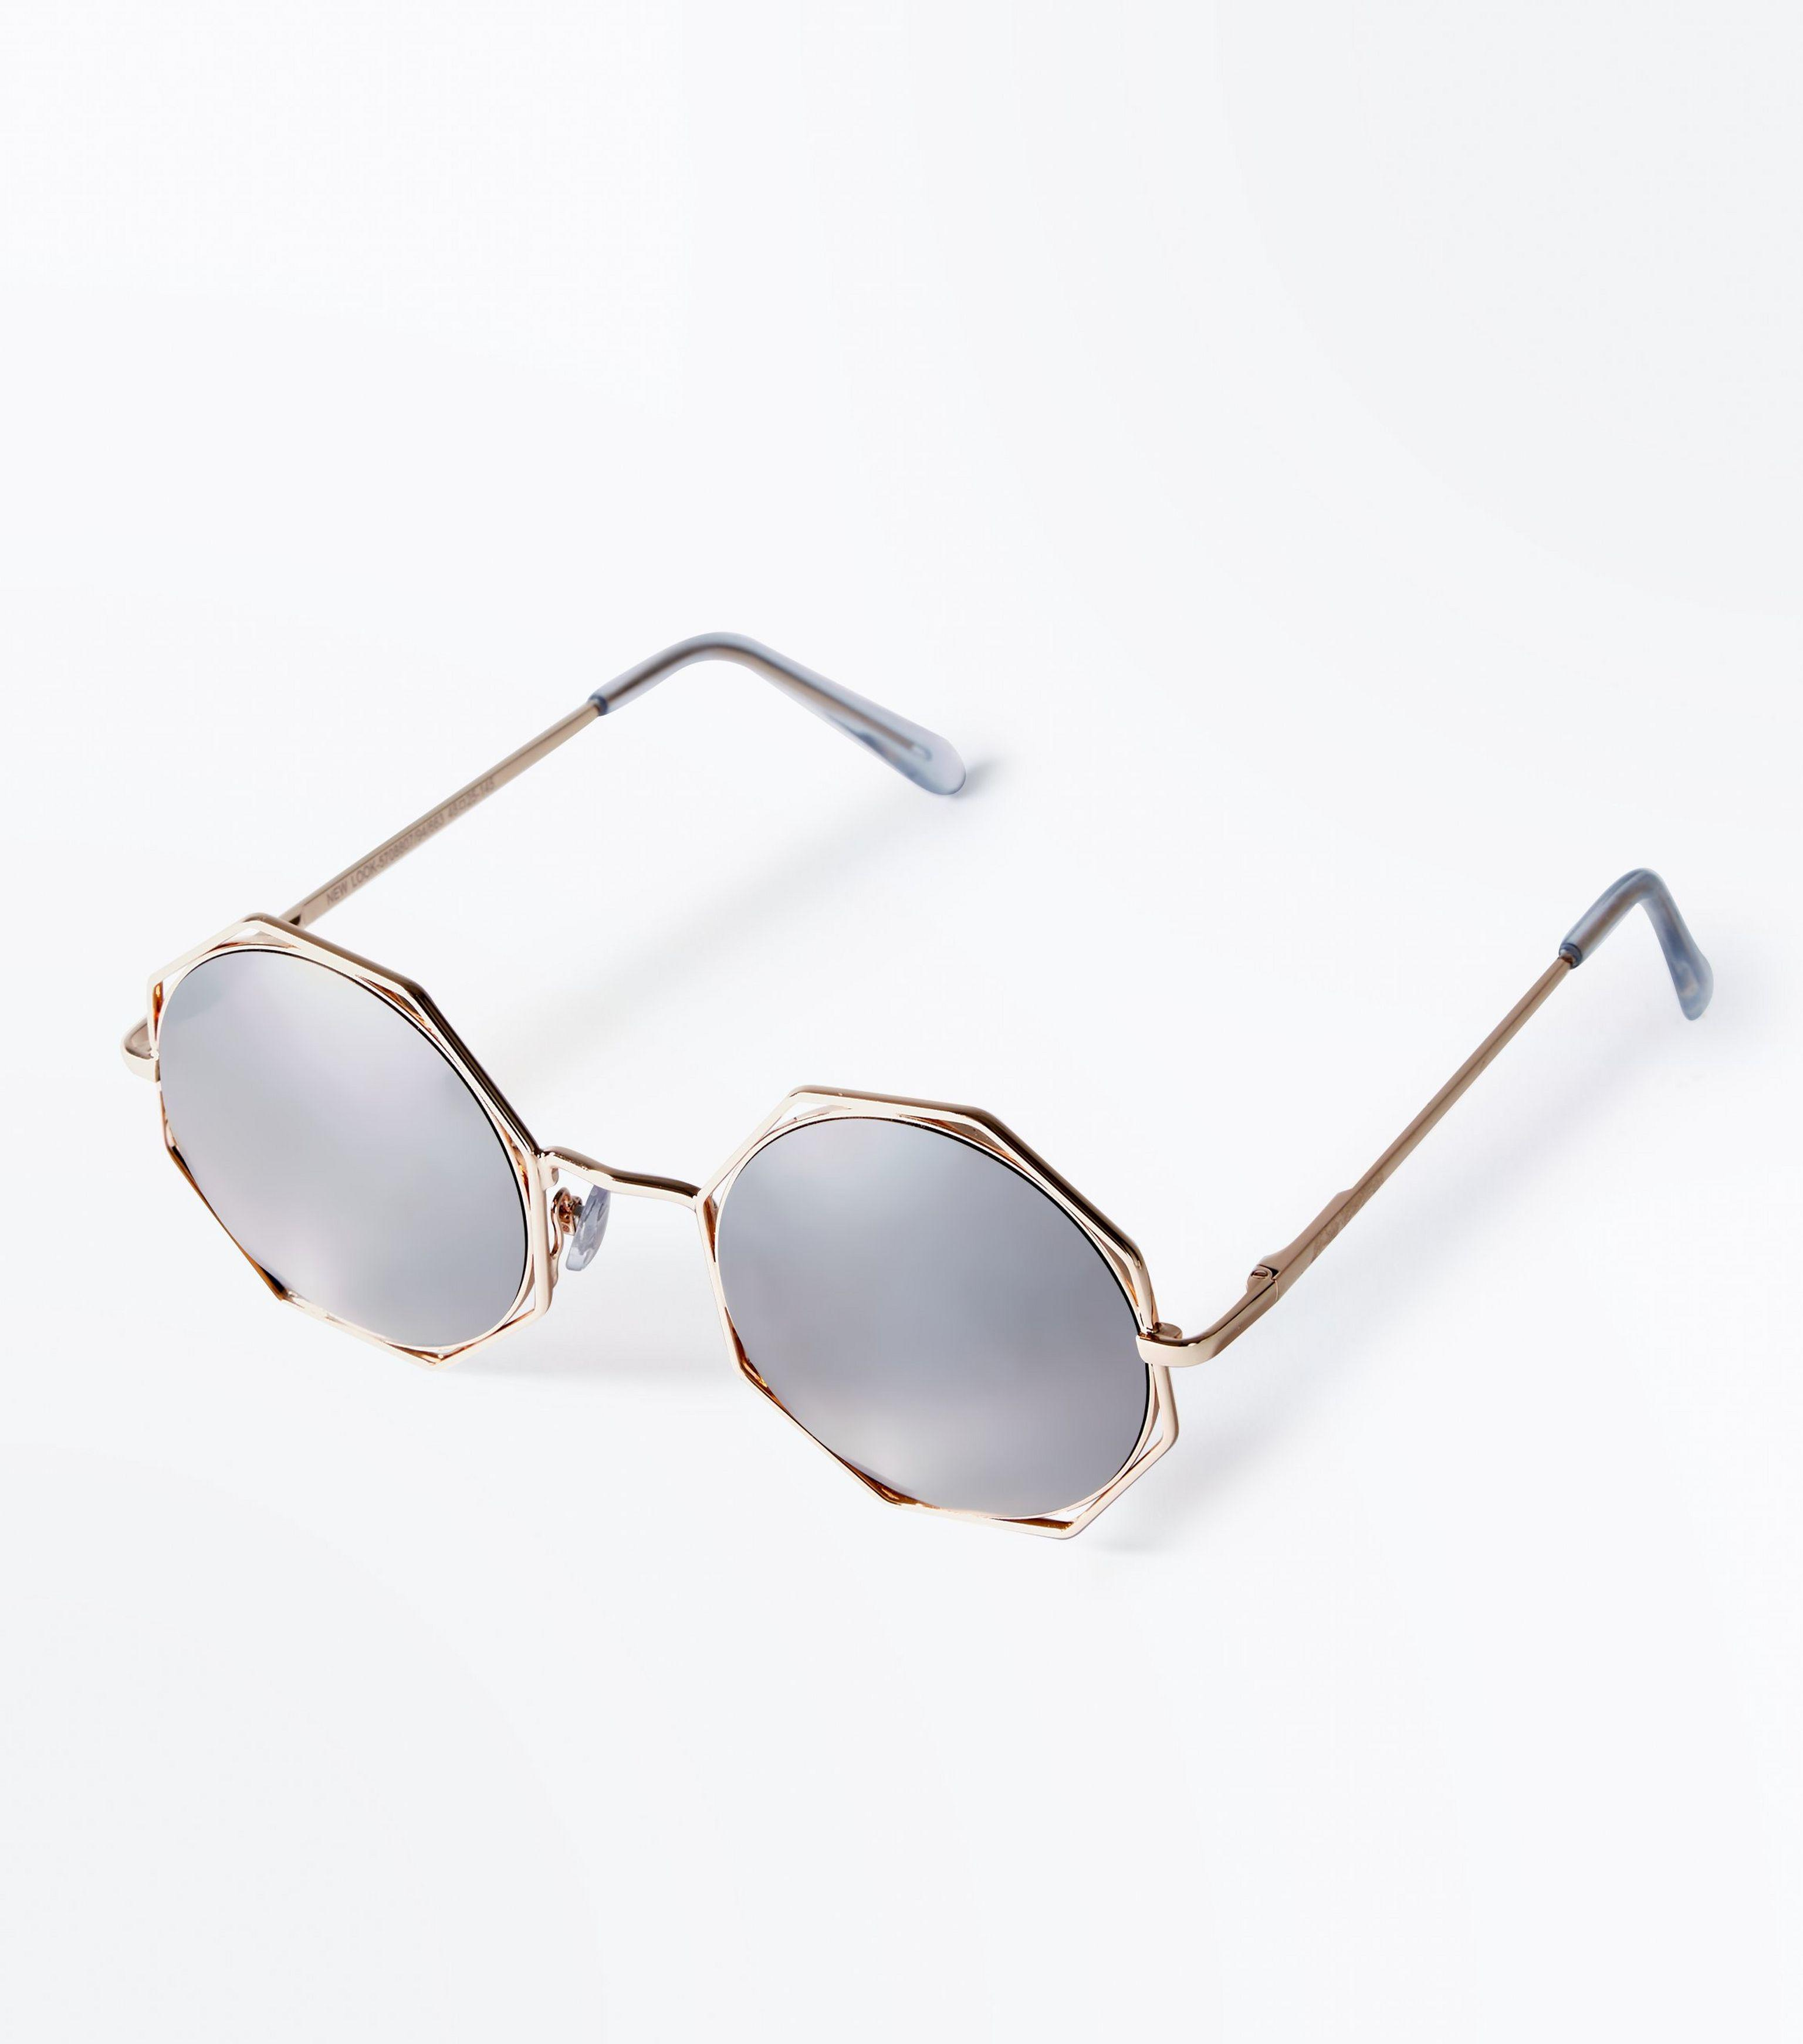 491ad0097 Gallery. Previously sold at: New Look · Women's Mirrored Sunglasses ...